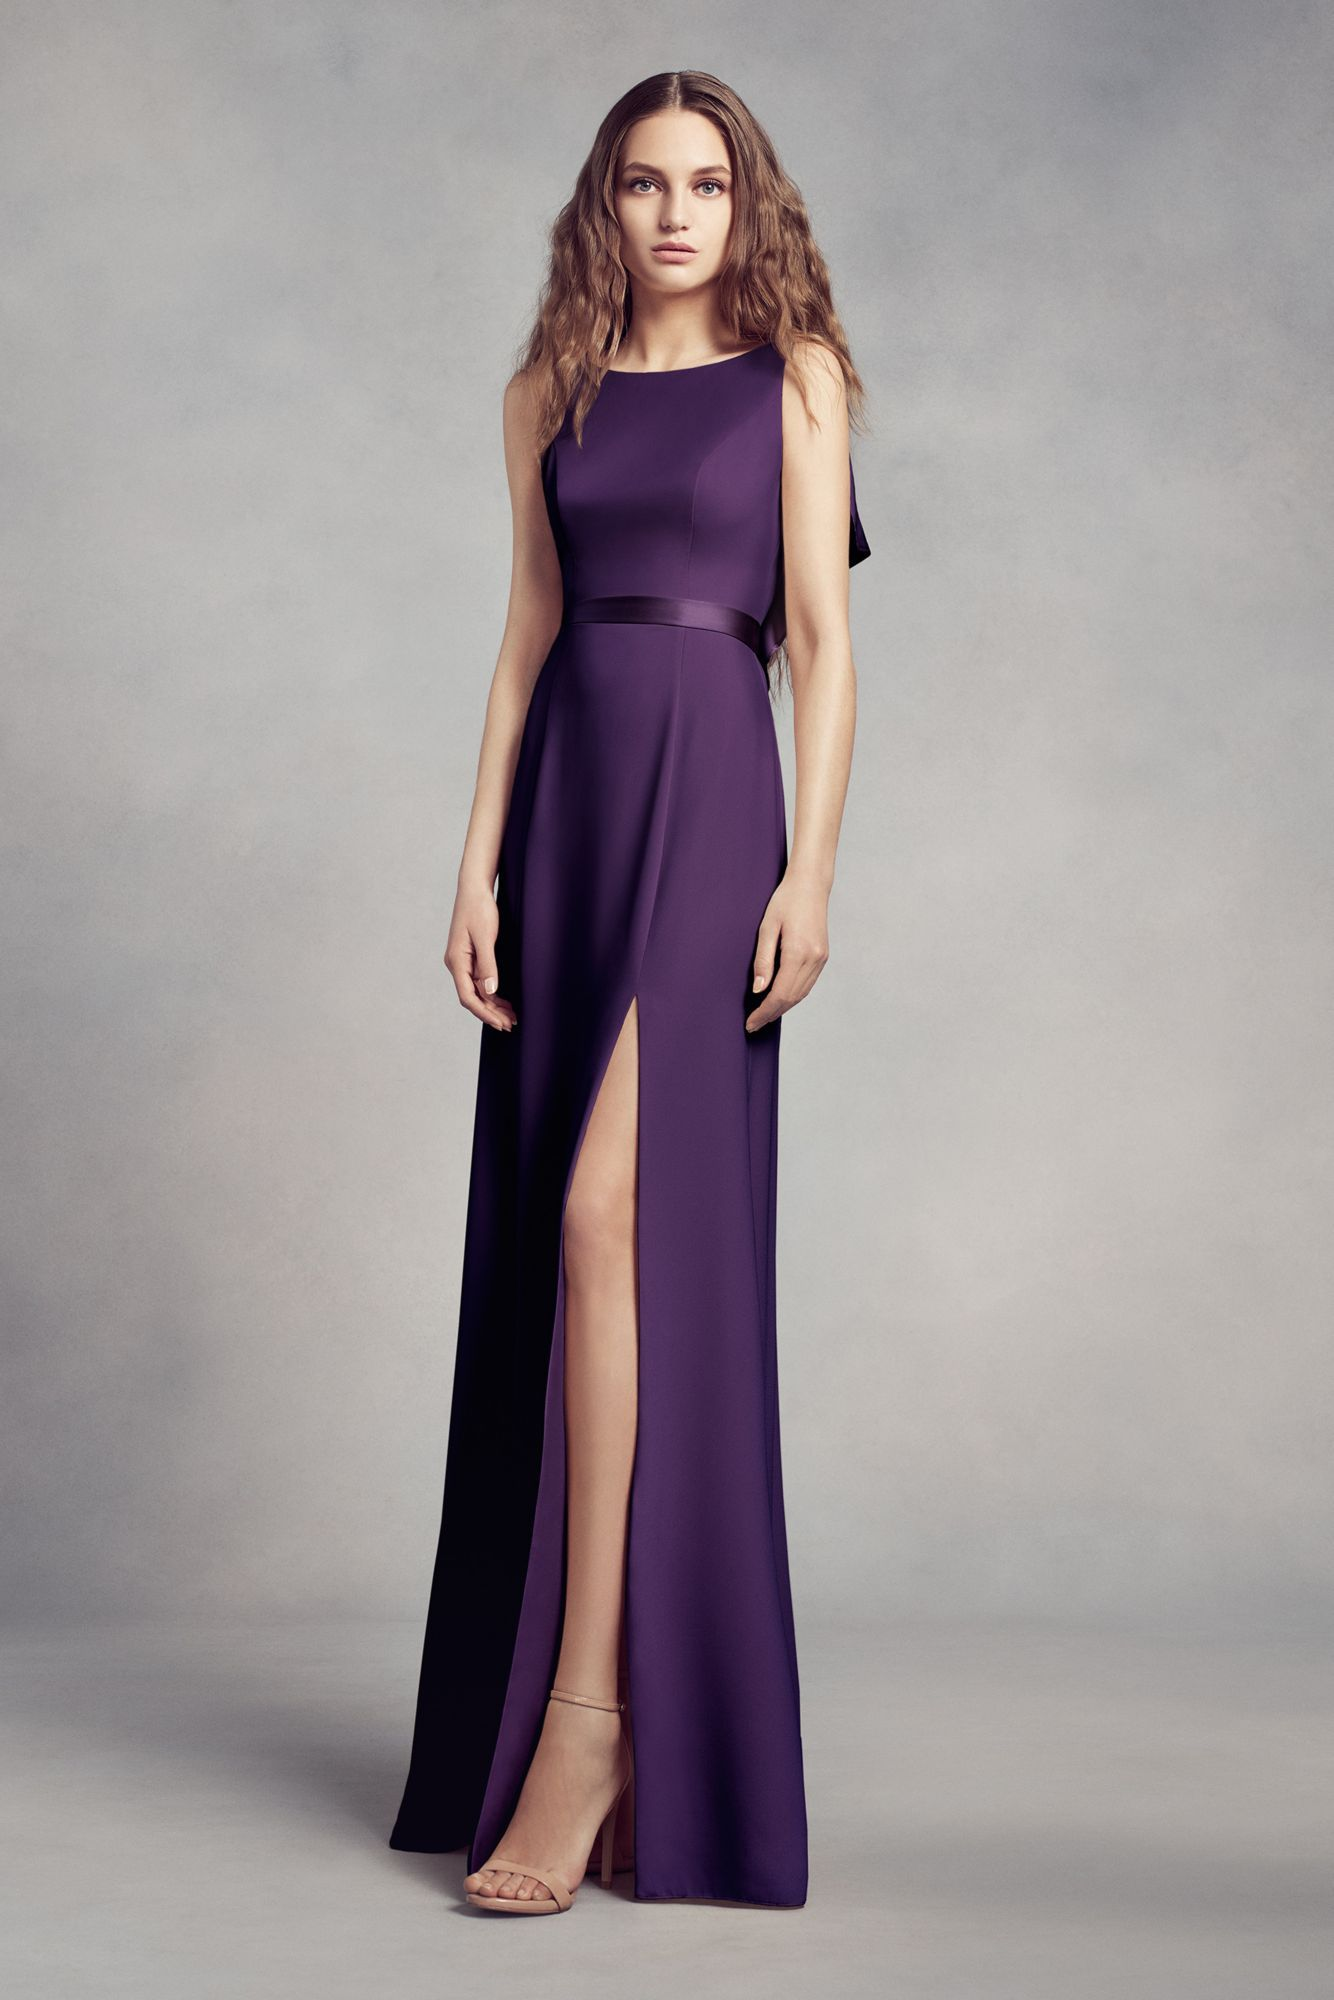 Unique ruffled back long vw360348 high neck bridesmaid dresses white by vera wang fall 2017 sleek boat neck bridesmaid gown ribbon belt skirt slit amethyst ombrellifo Image collections